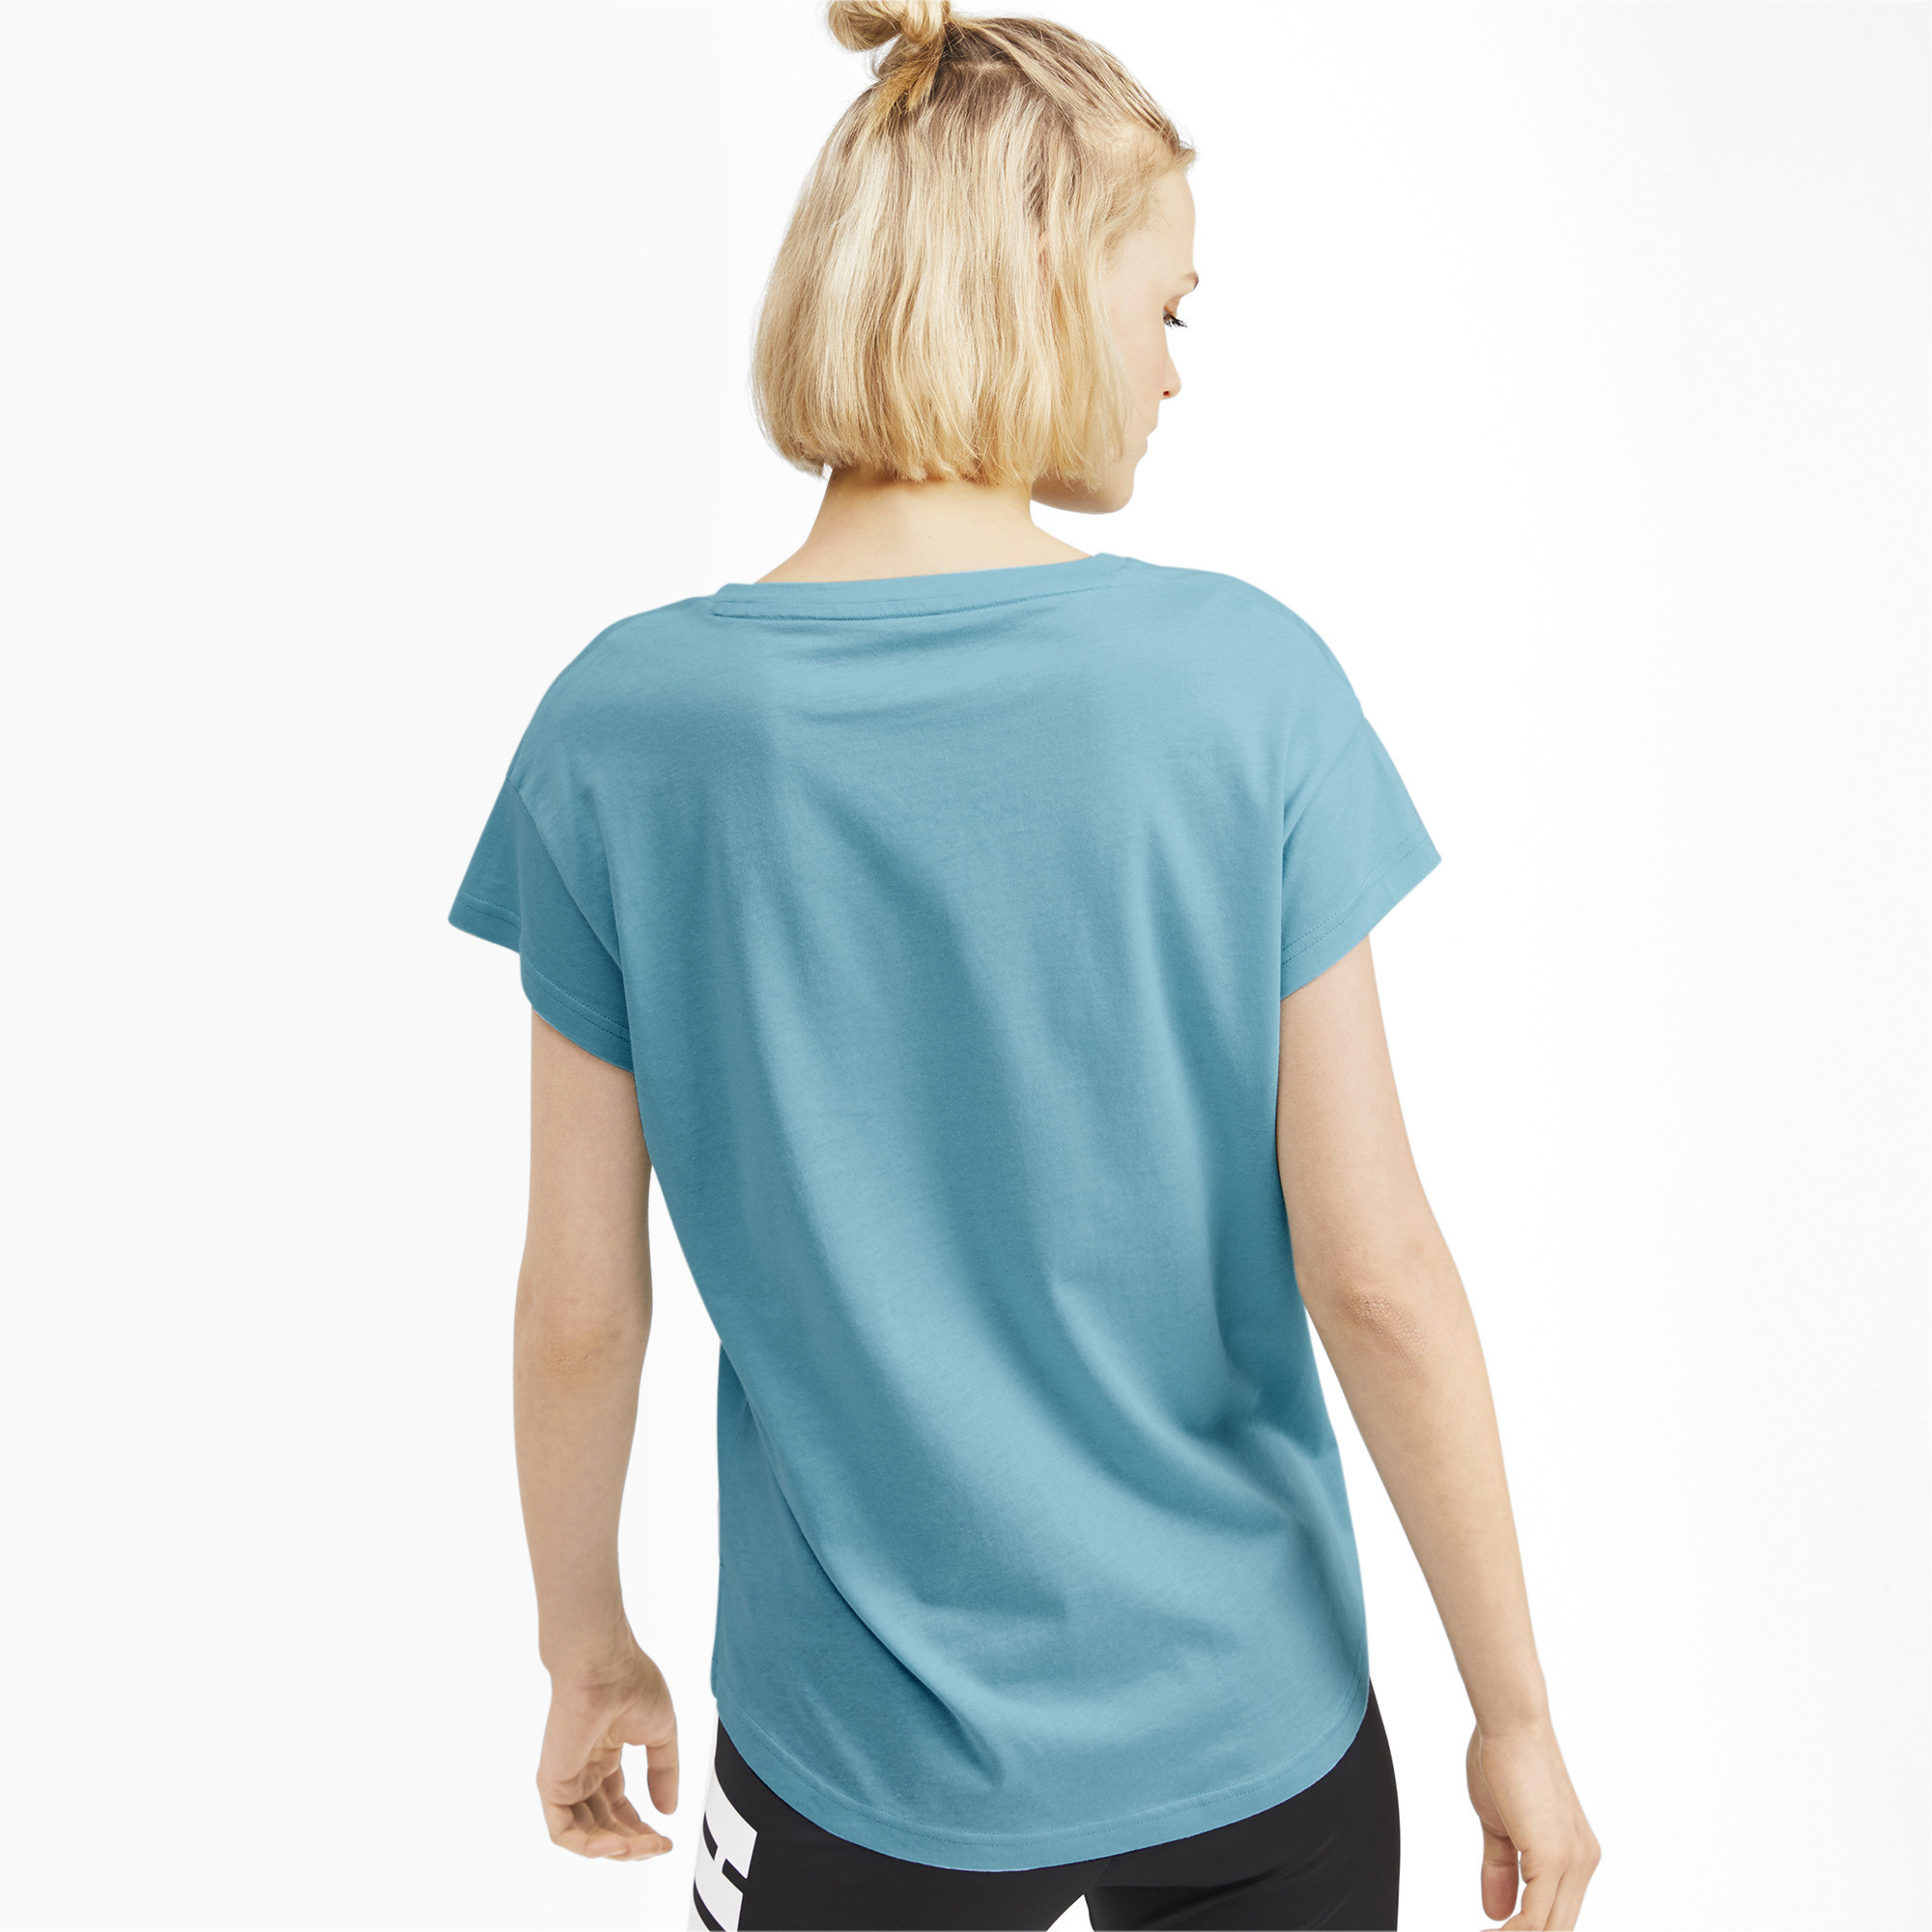 PUMA-Modern-Sports-Women-039-s-Graphic-Tee-Women-Tee-Basics thumbnail 15